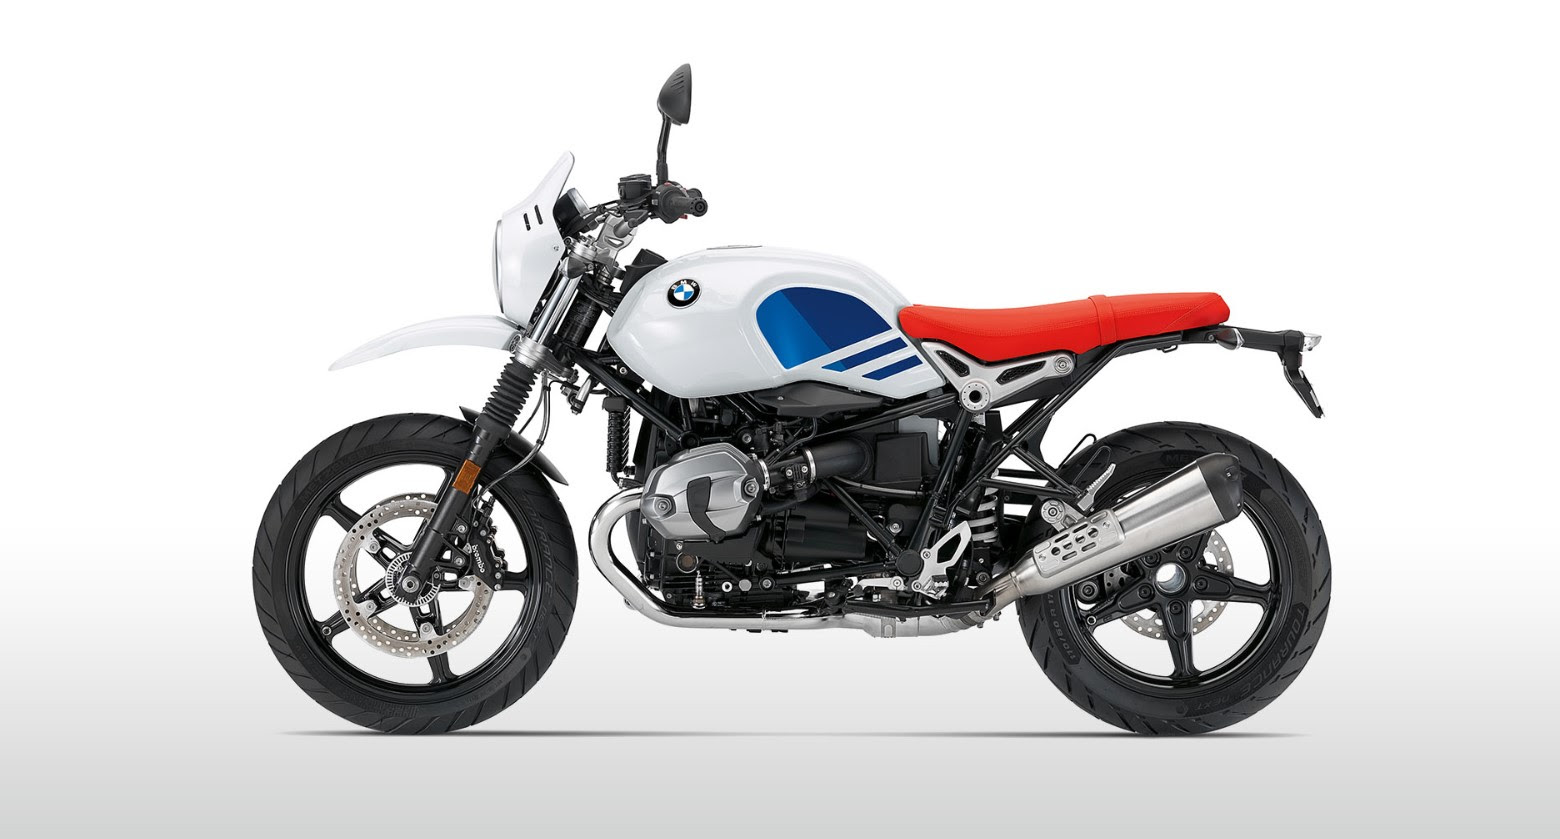 Meet the 2018 BMW R NineT Urban G/S | BMW Motorcycles of ...